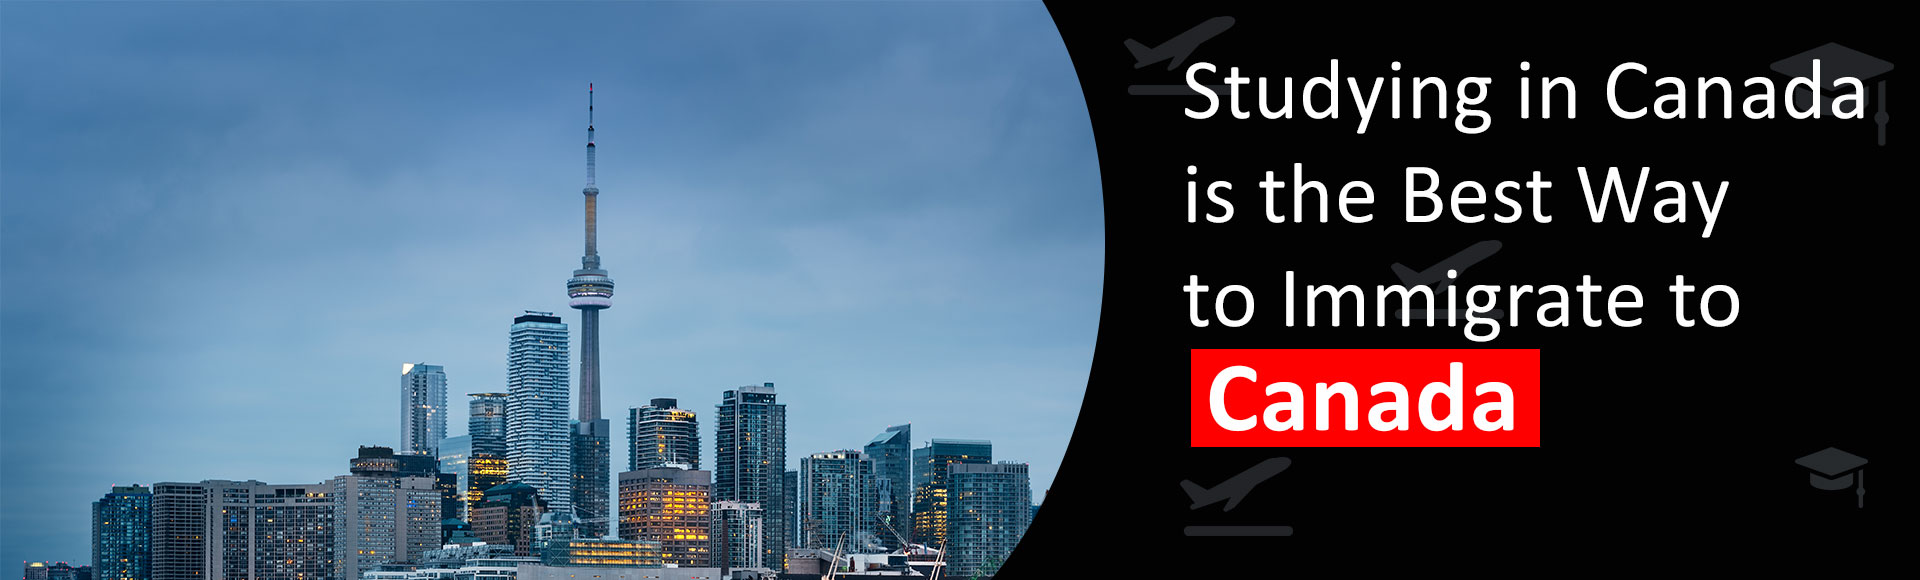 Studying in Canada is the Best Way to Immigrate to Canada